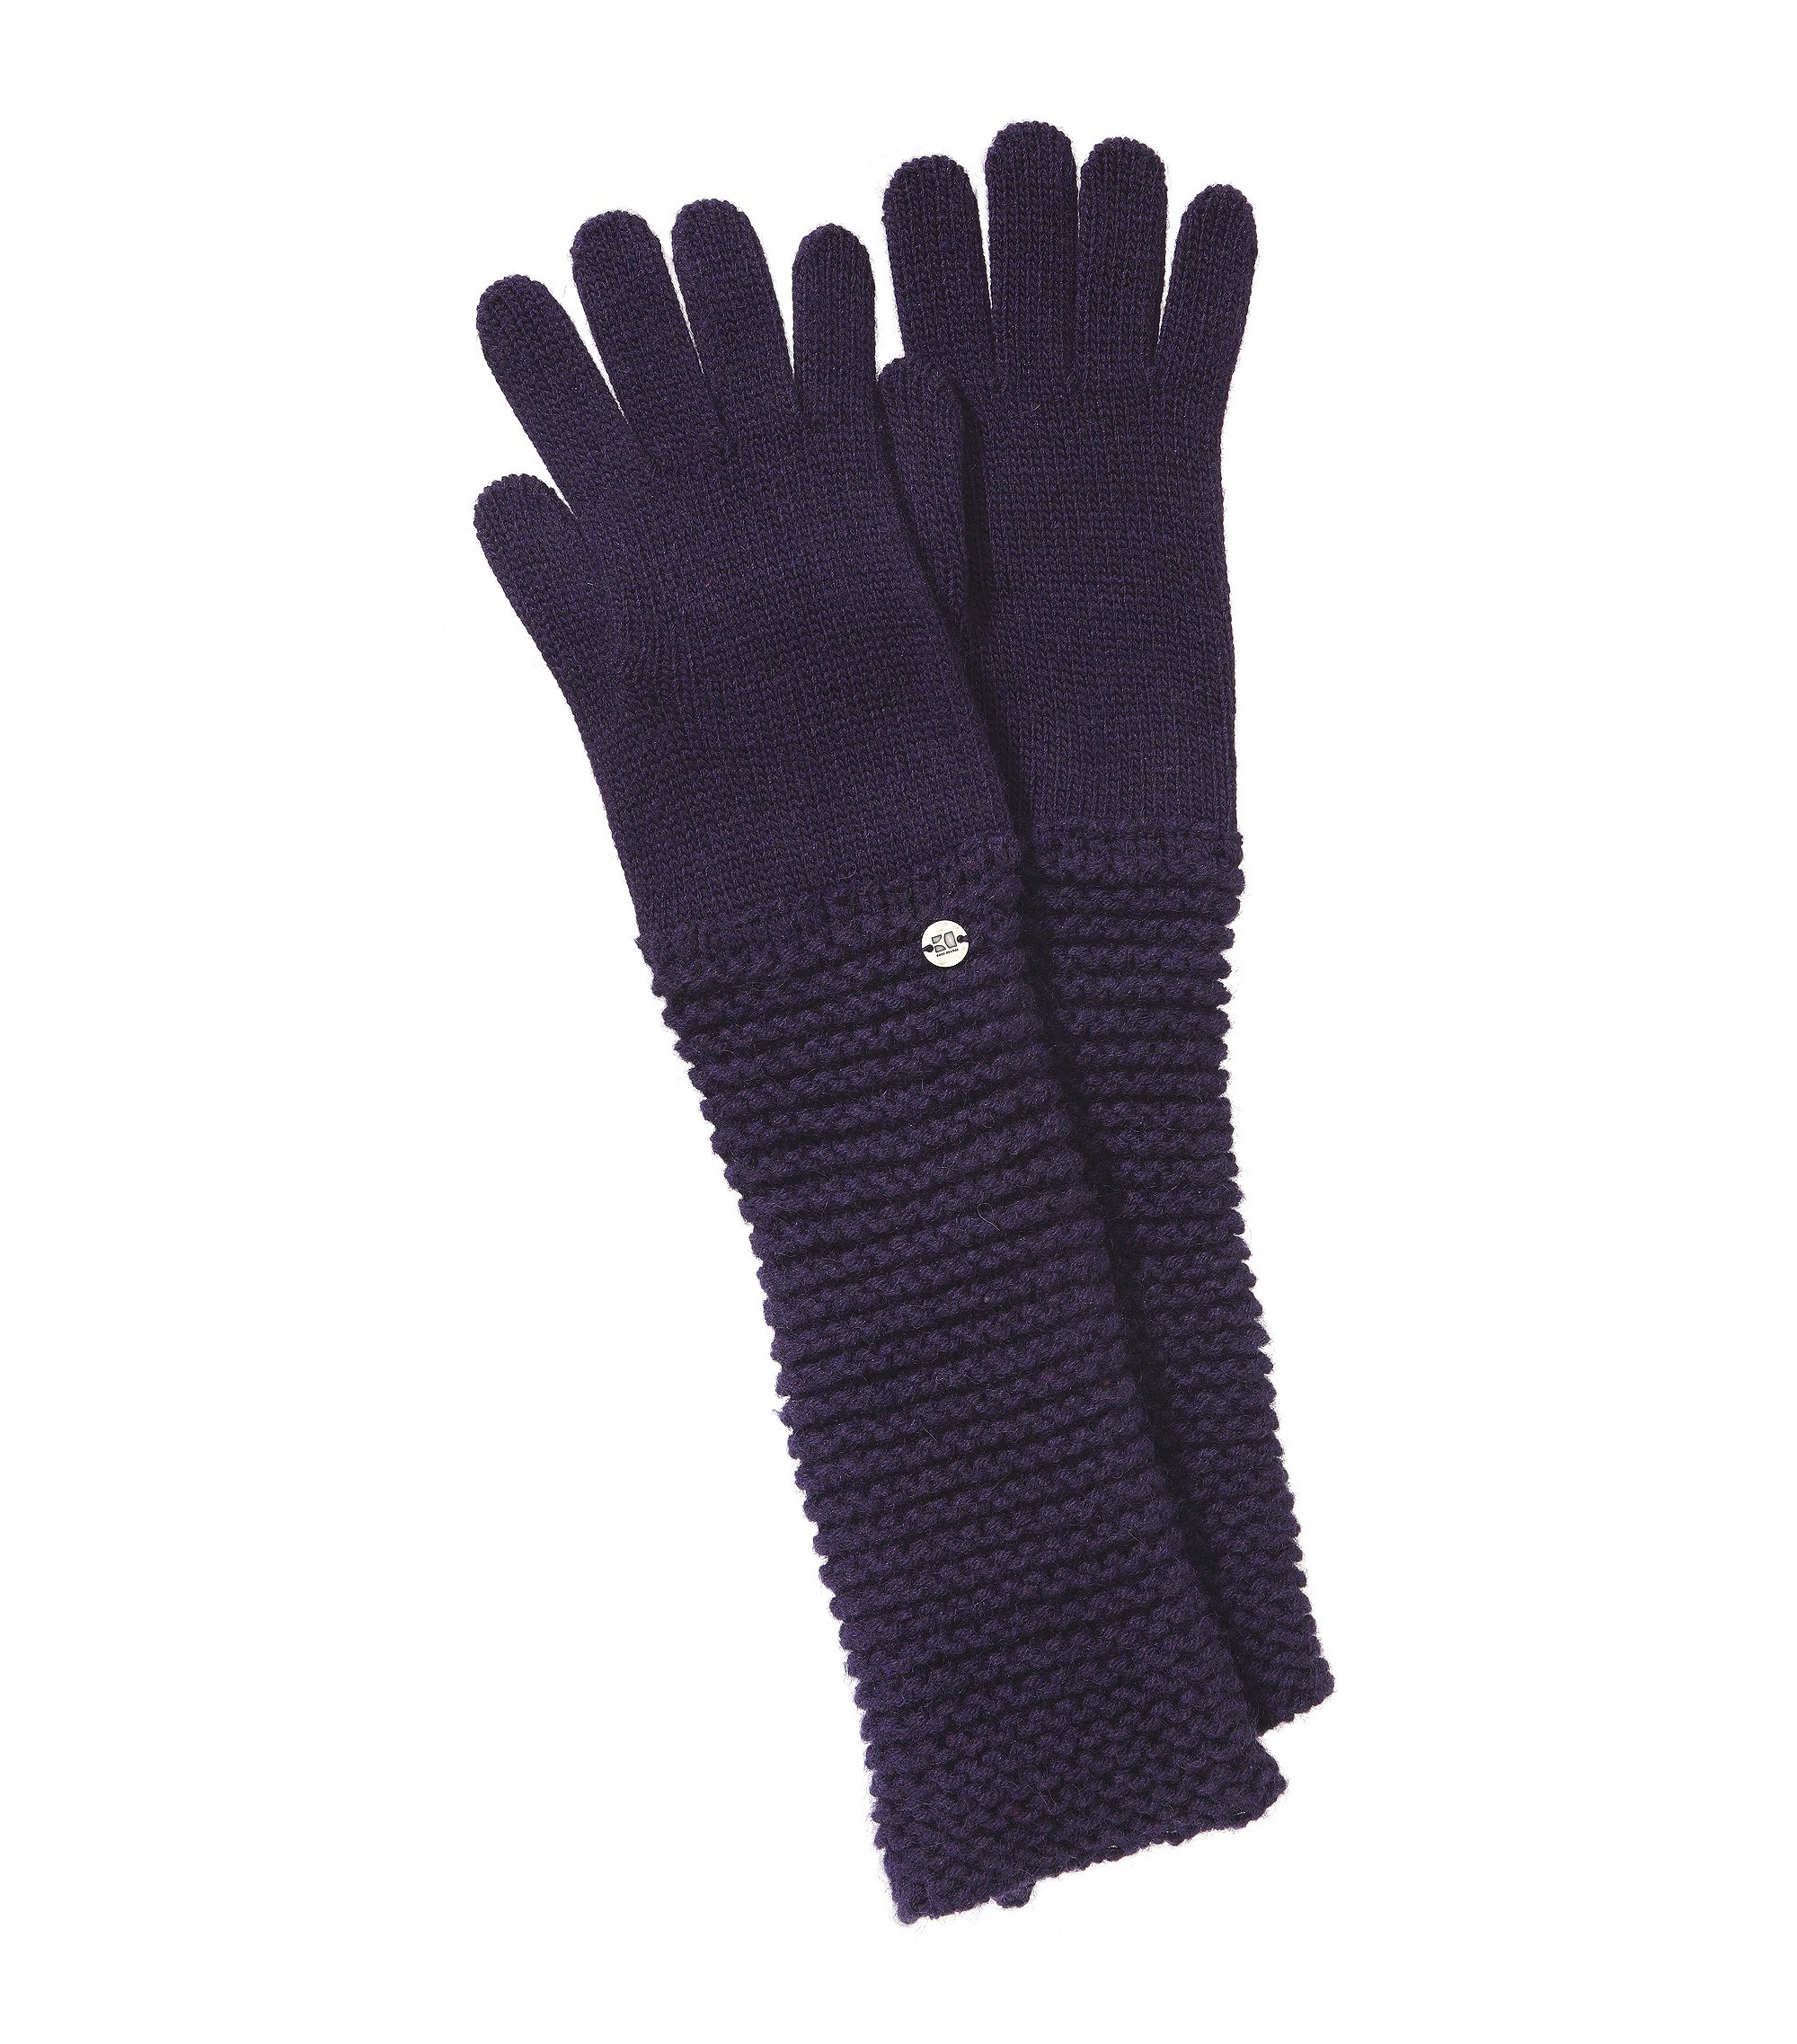 Knitted gloves with a rib knit pattern 'Gasalie', Purple